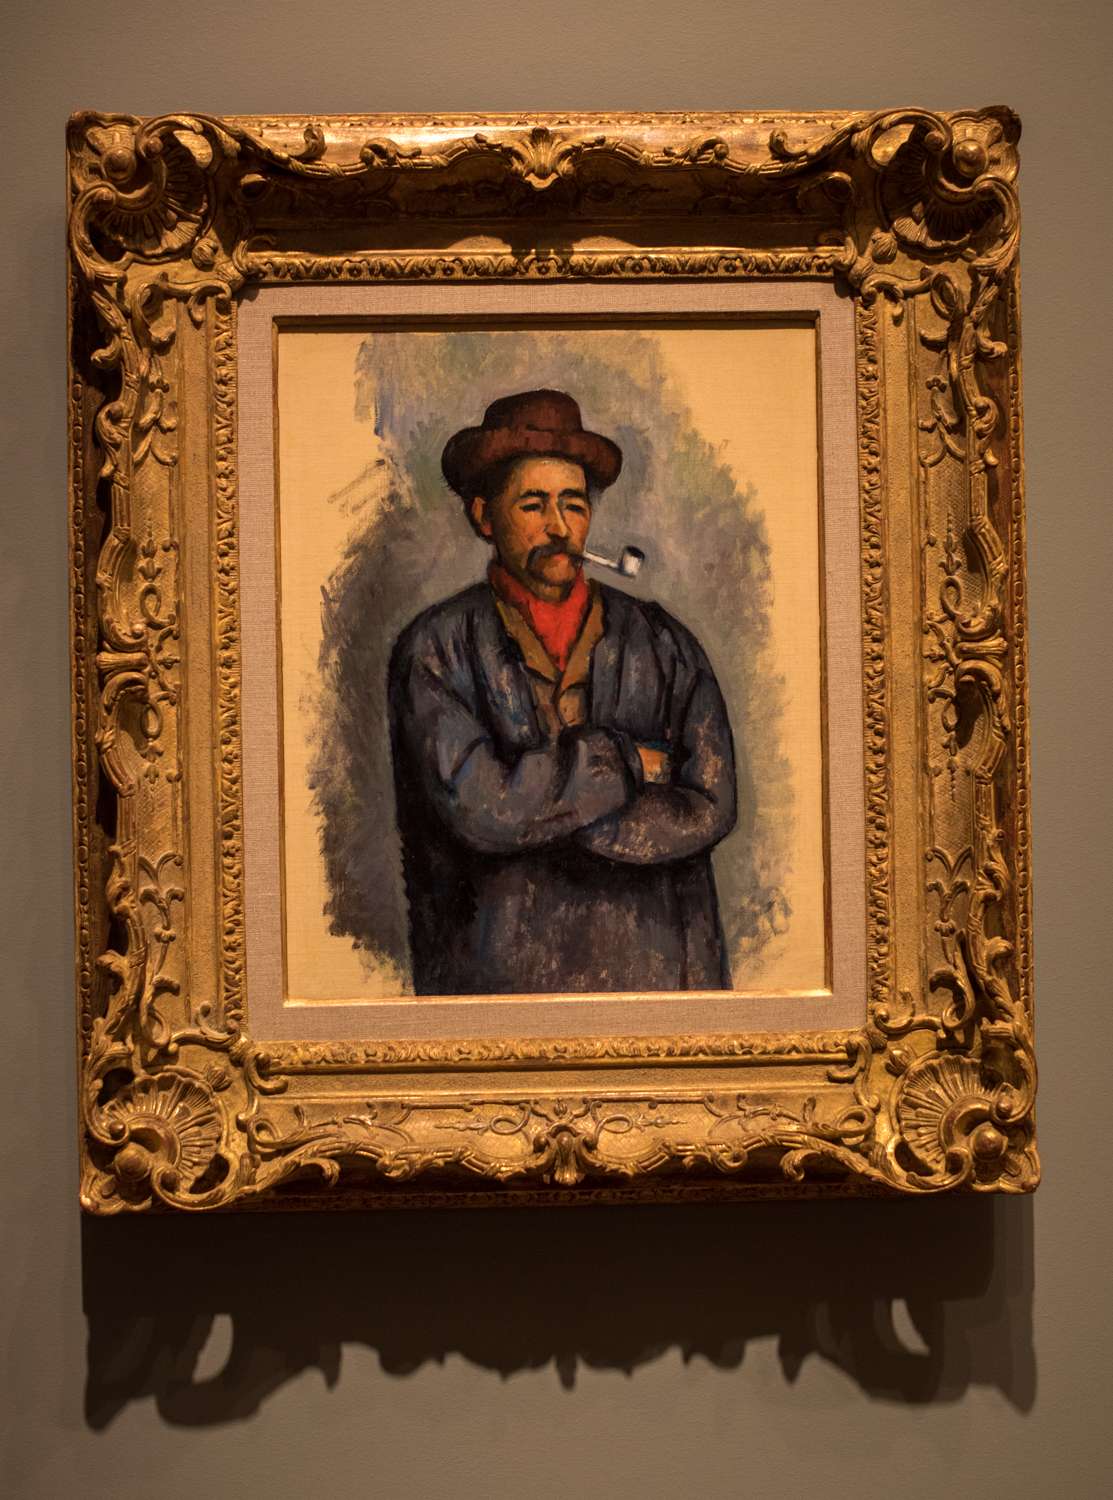 """Man with a Pipe, 1890-1892 by Paul Cézanne (1839-1906), oil on canvas. The artist wrote' """"I love above all else the appearance of people who have grown old without breaking with old customs."""" This painting is one of a group of studies related to  The Card Players, one of Cézanne's most important pictorial projects. The local workers reminded him of qualities he admired - steadfast, unchanging, and monumental."""